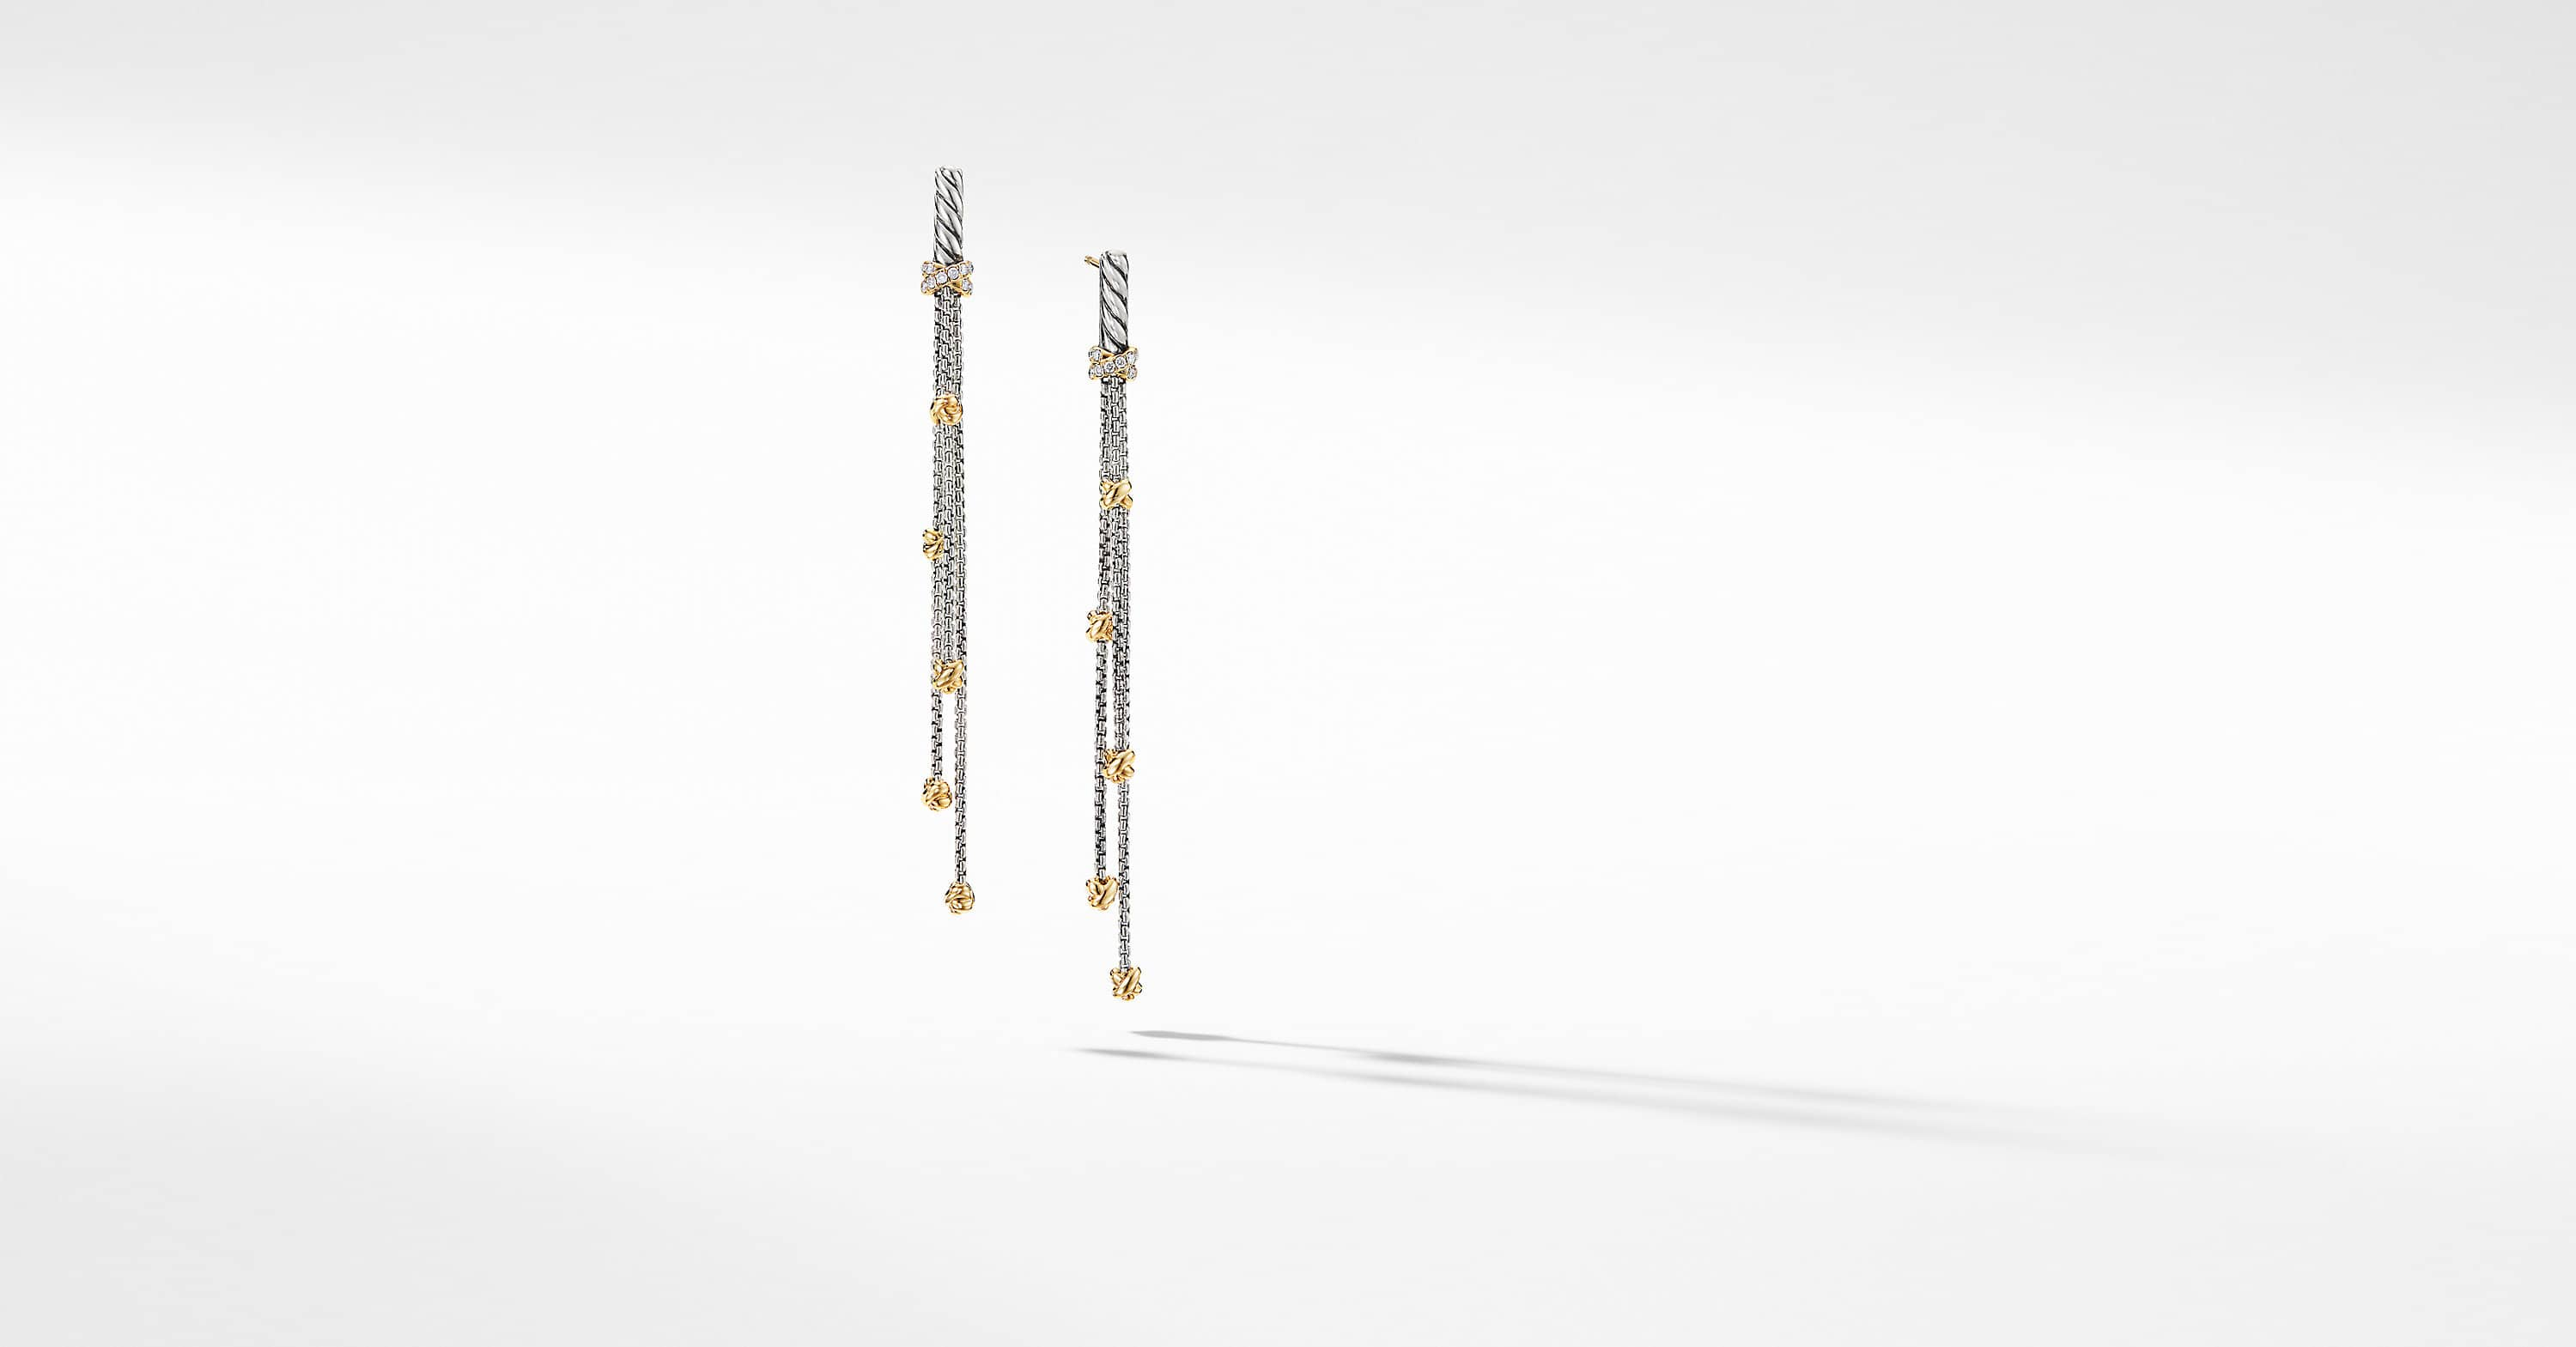 Petite Helena Chain Drop Earrings with 18K Yellow Gold with Diamonds